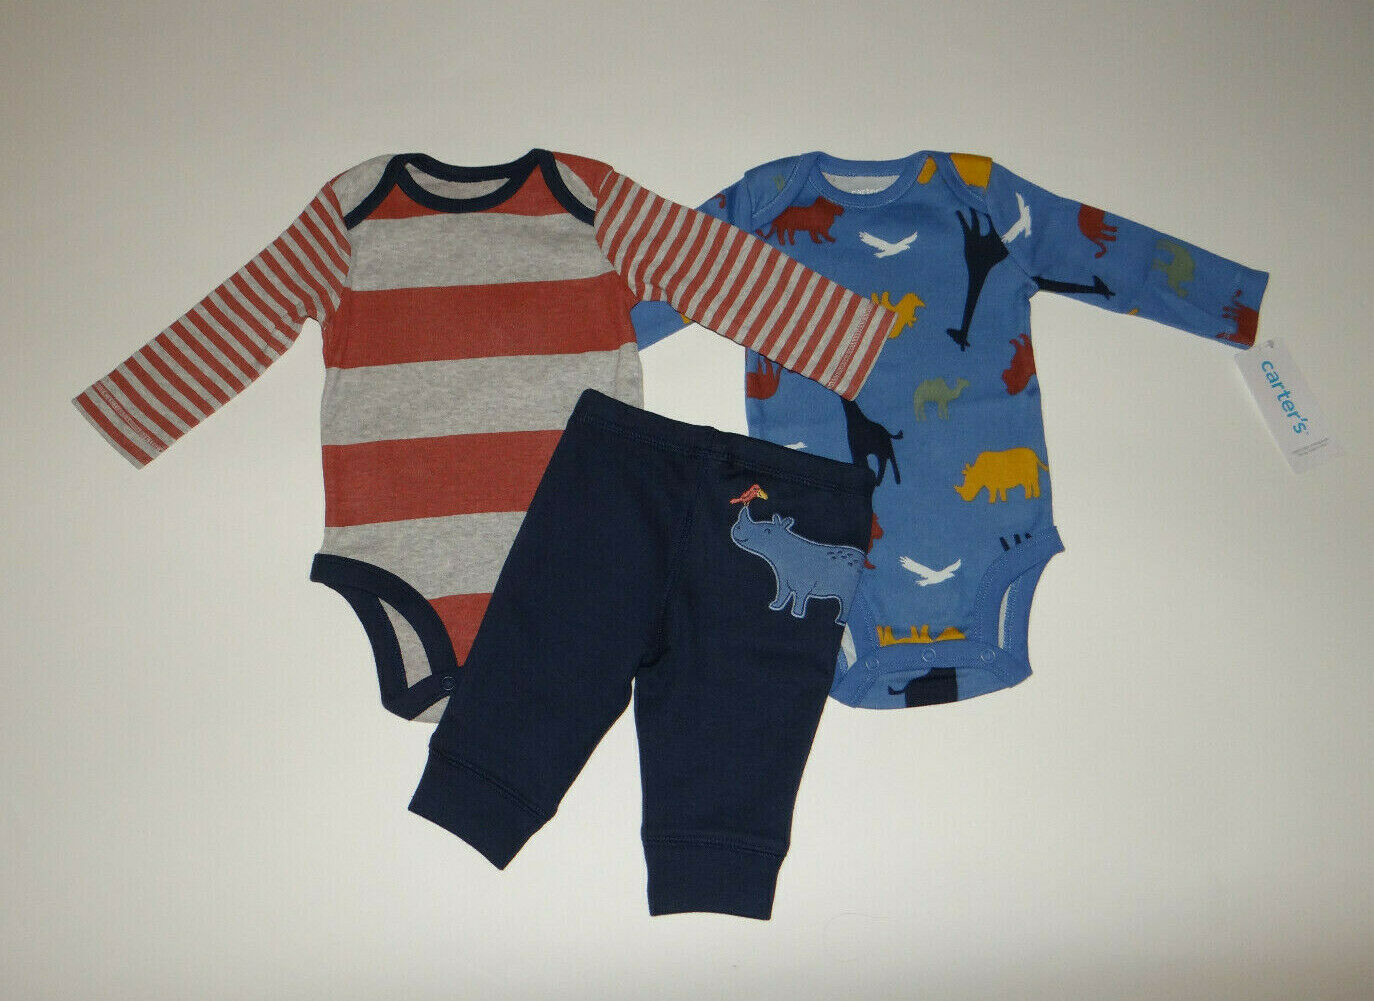 NWT, Baby boy clothes, Newborn, Carter's 3 piece set/~~SEE DETAILS ON SIZE/FLAPS